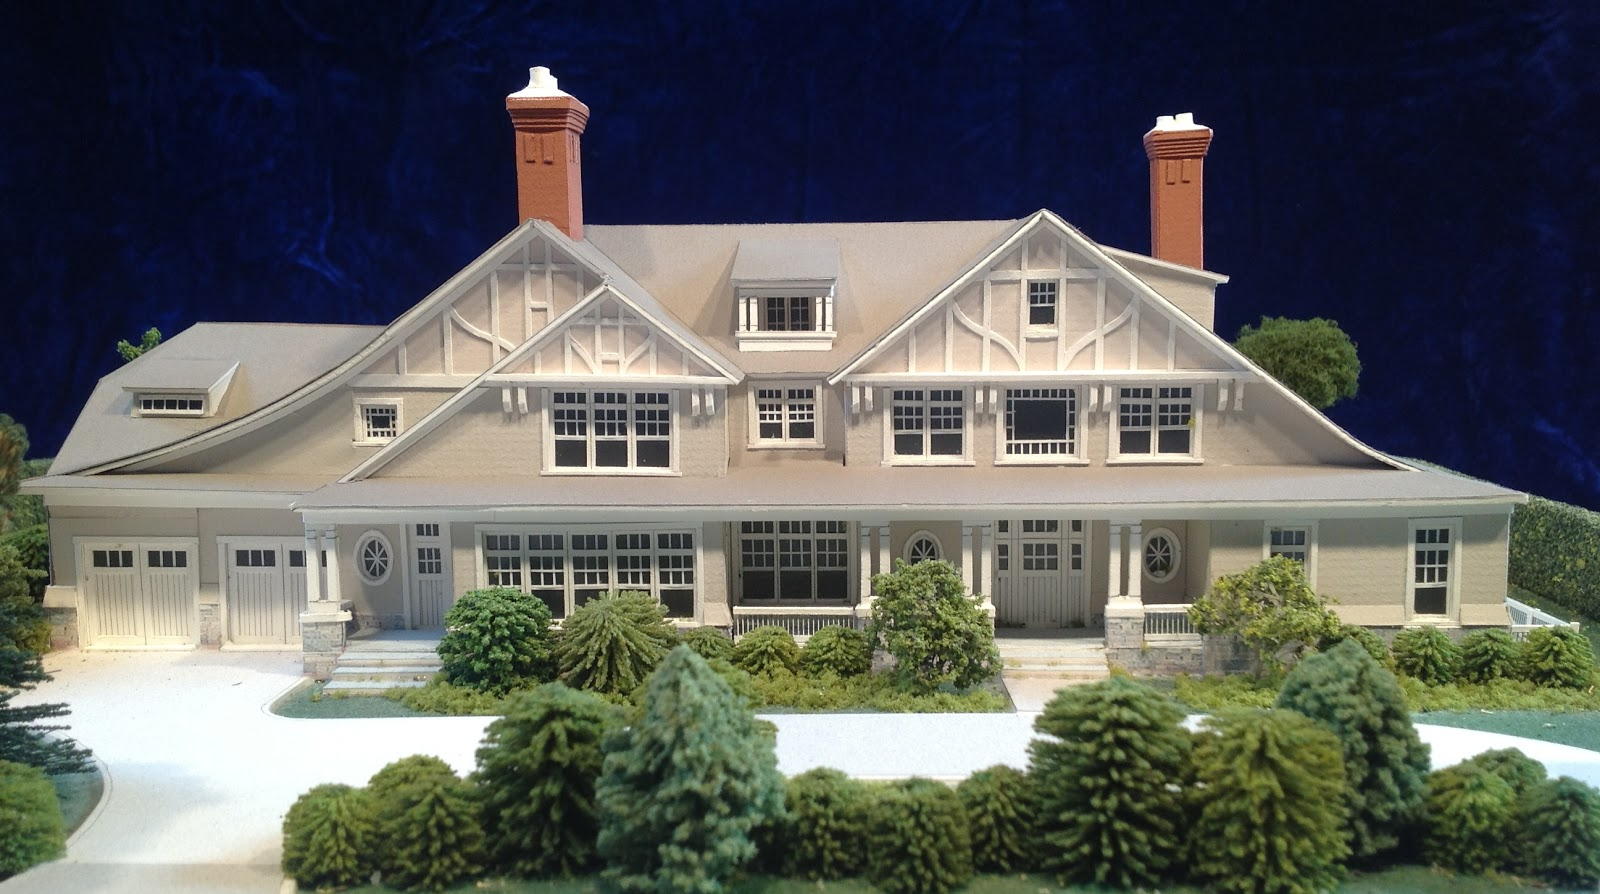 Architectural house models of houses in the hamptons long for Houses models